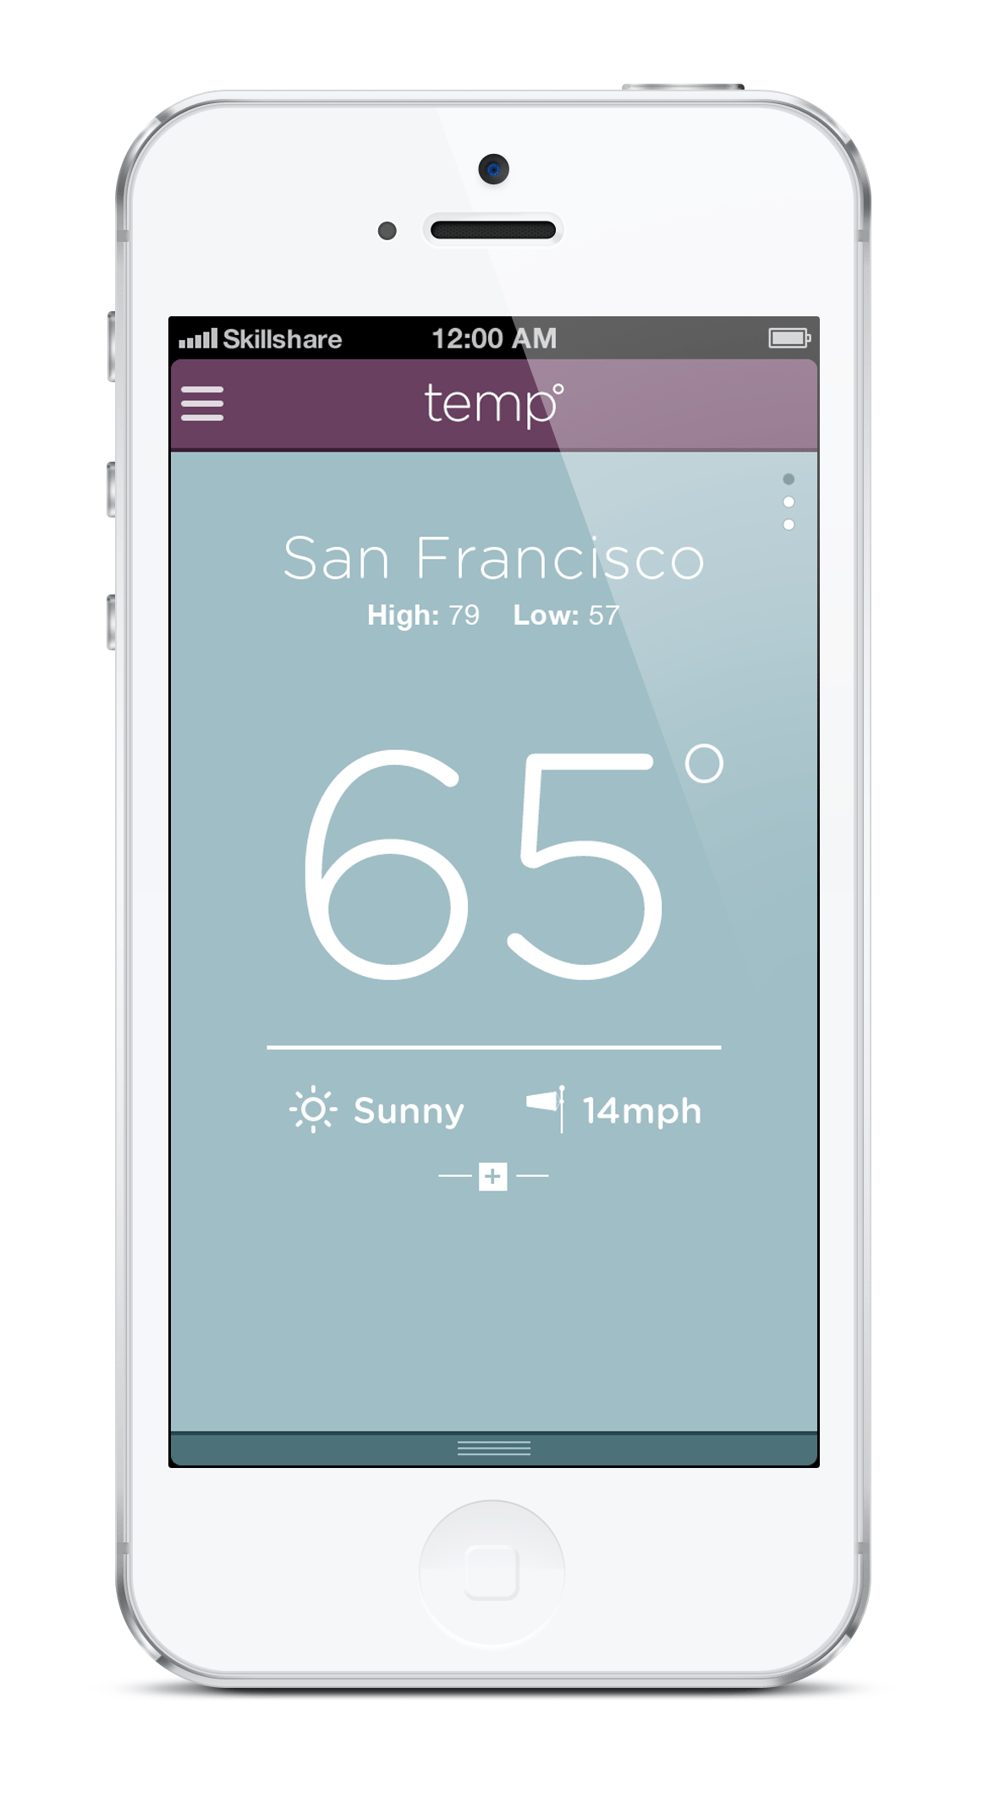 temp weather app - image 2 - student project